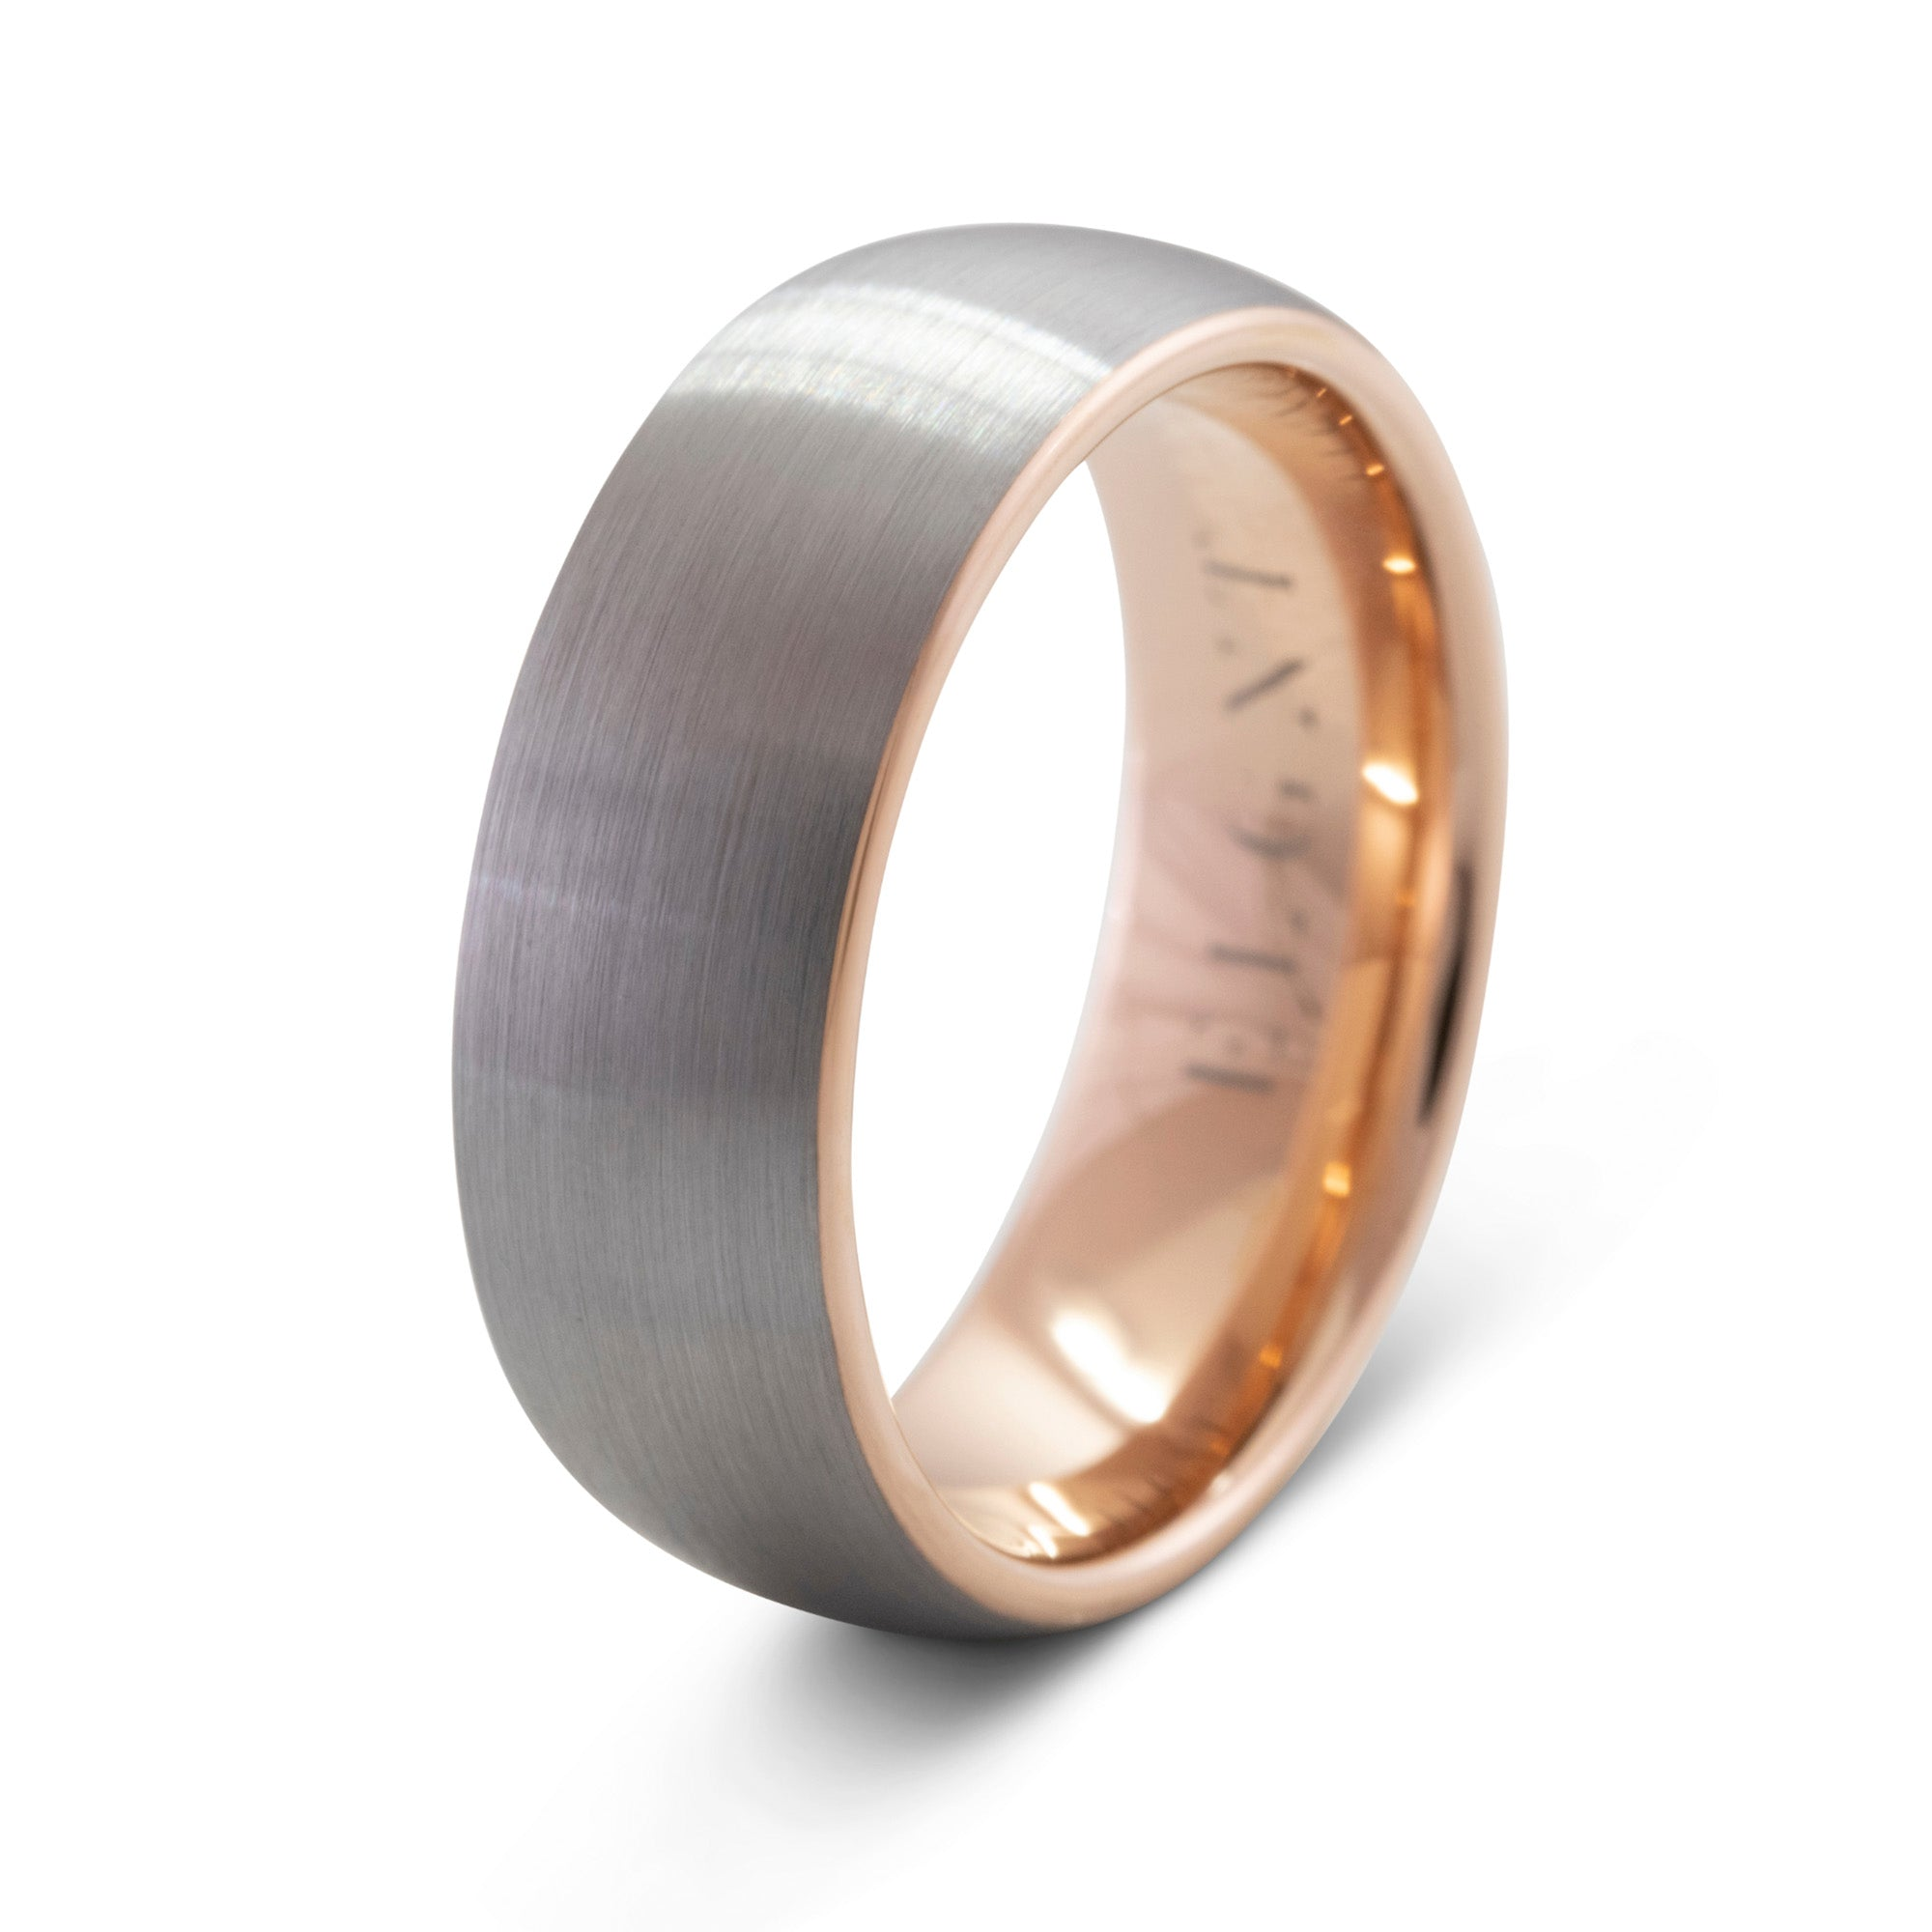 Tungsten Ring Mens Wedding Band Silver and Rose Gold Men/'s Ring 8mm Wedding Ring For Him